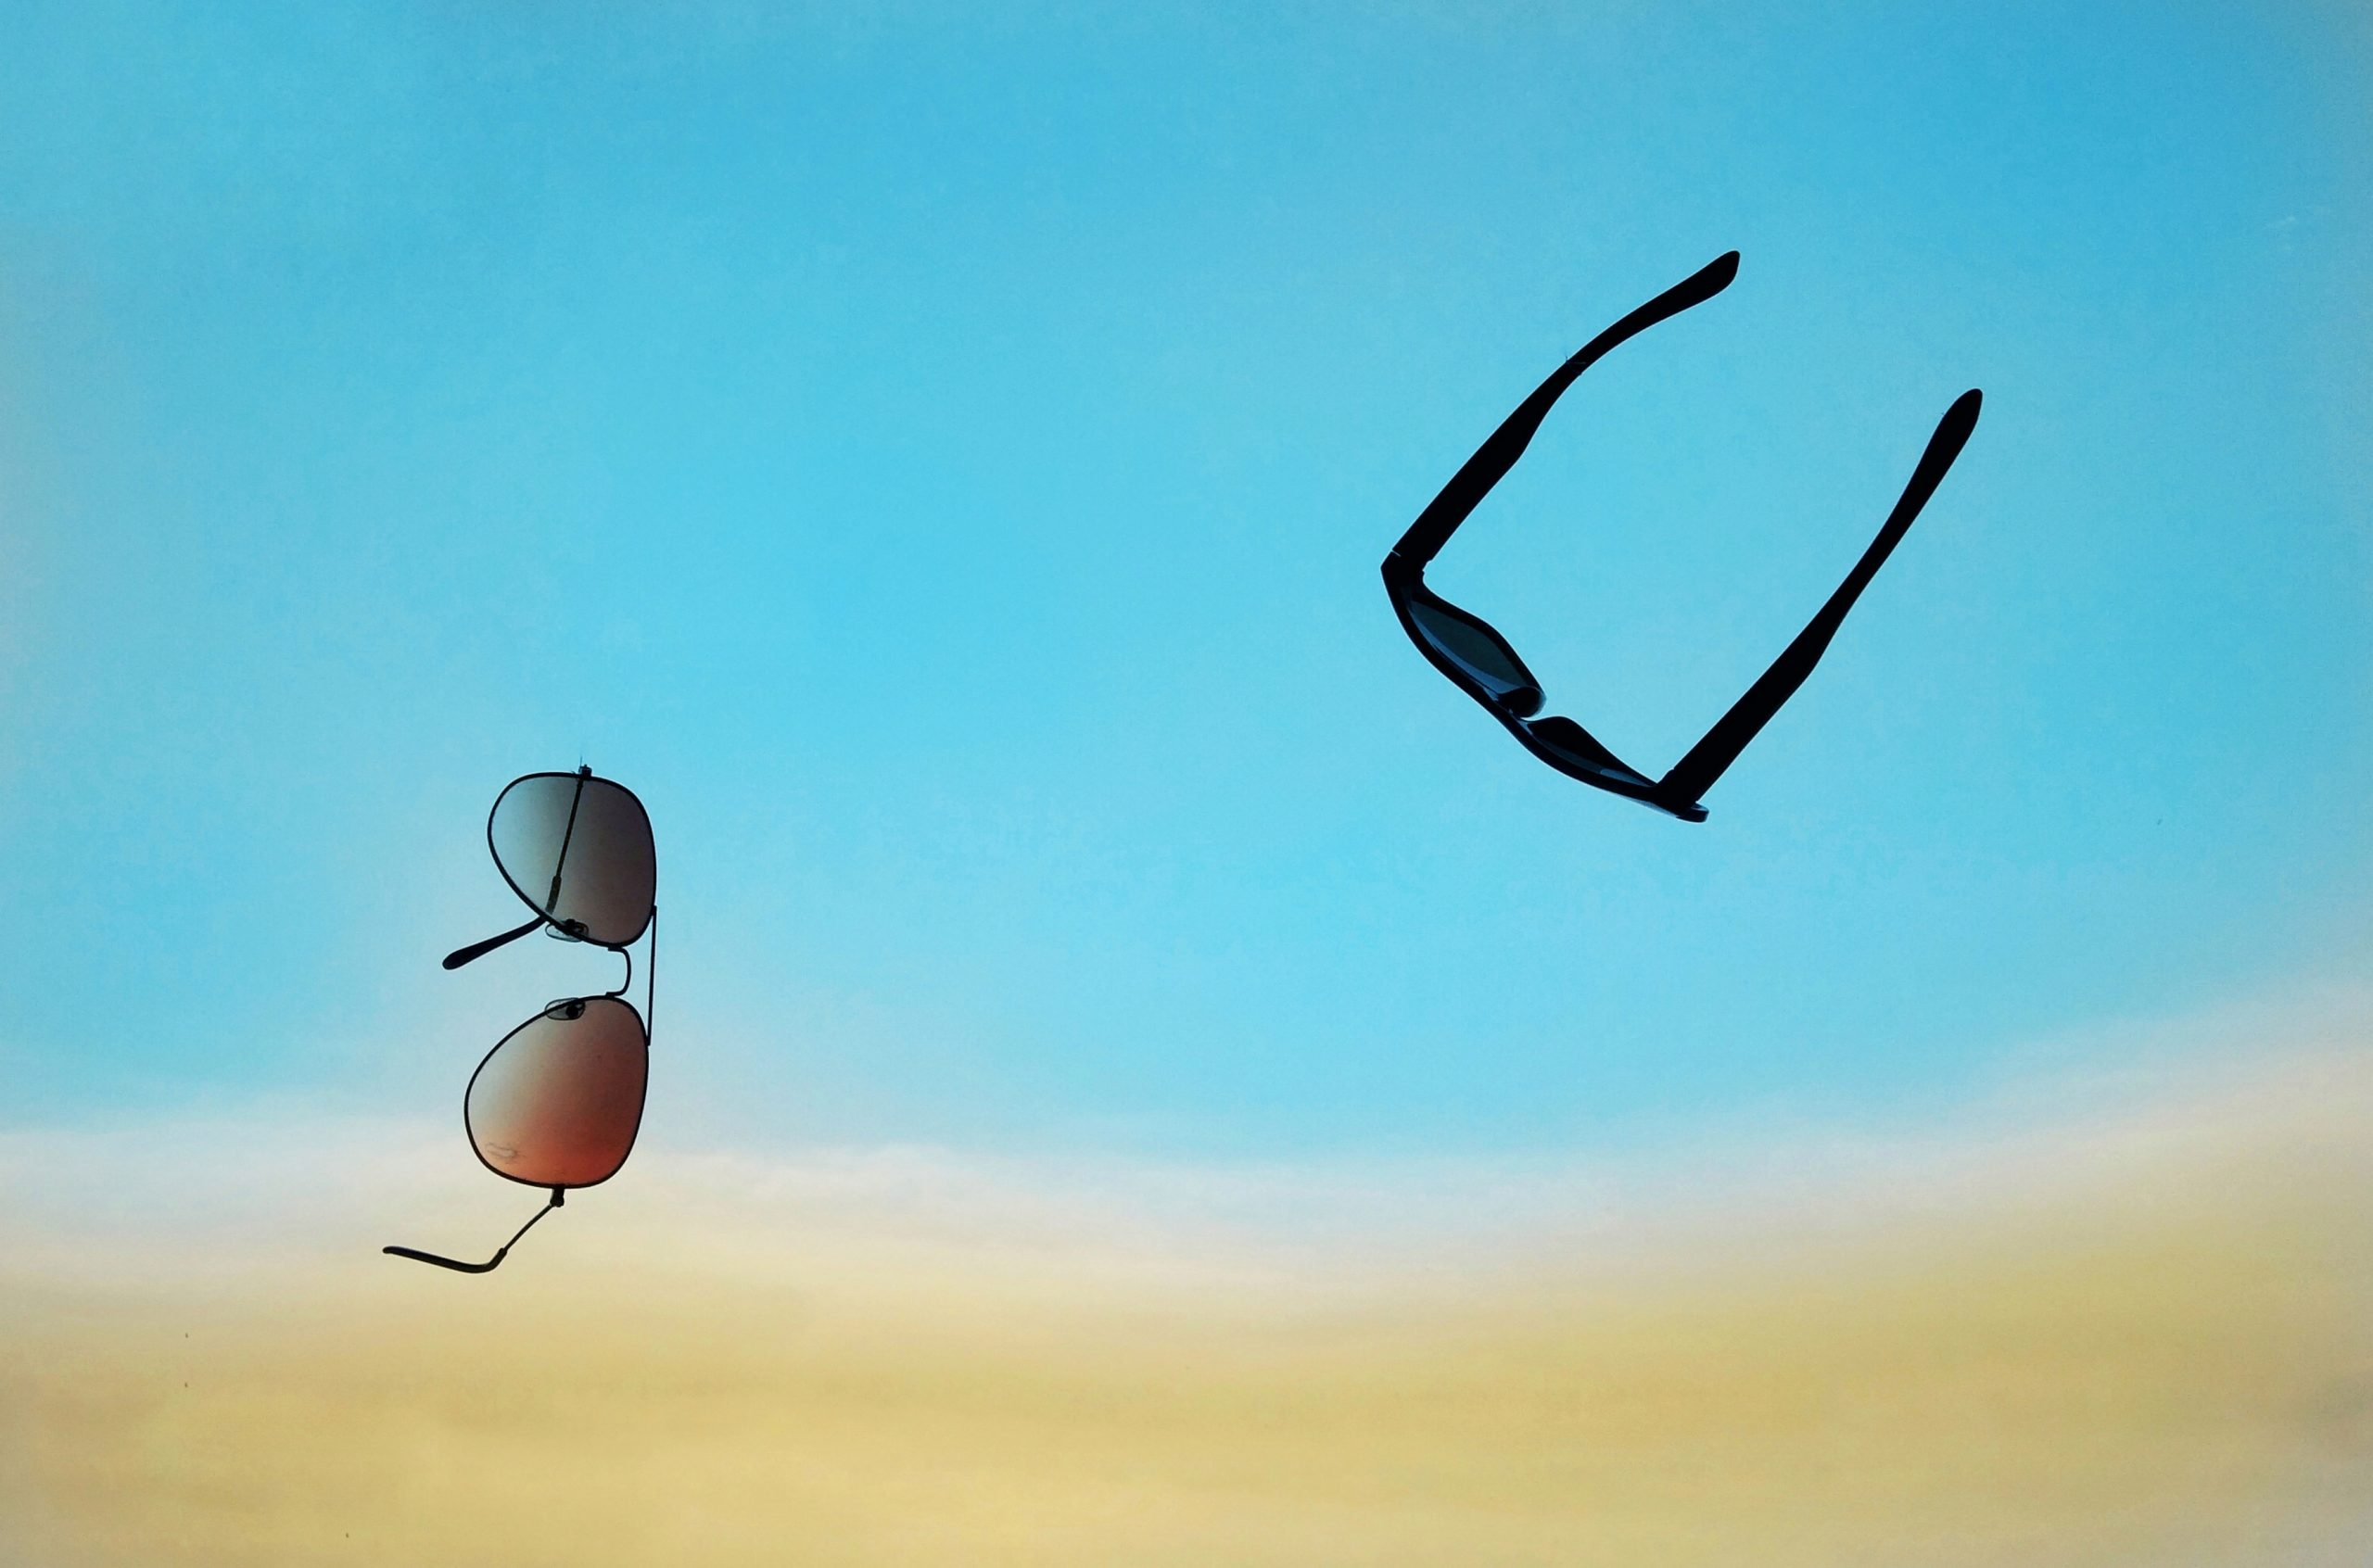 Spectacles in air